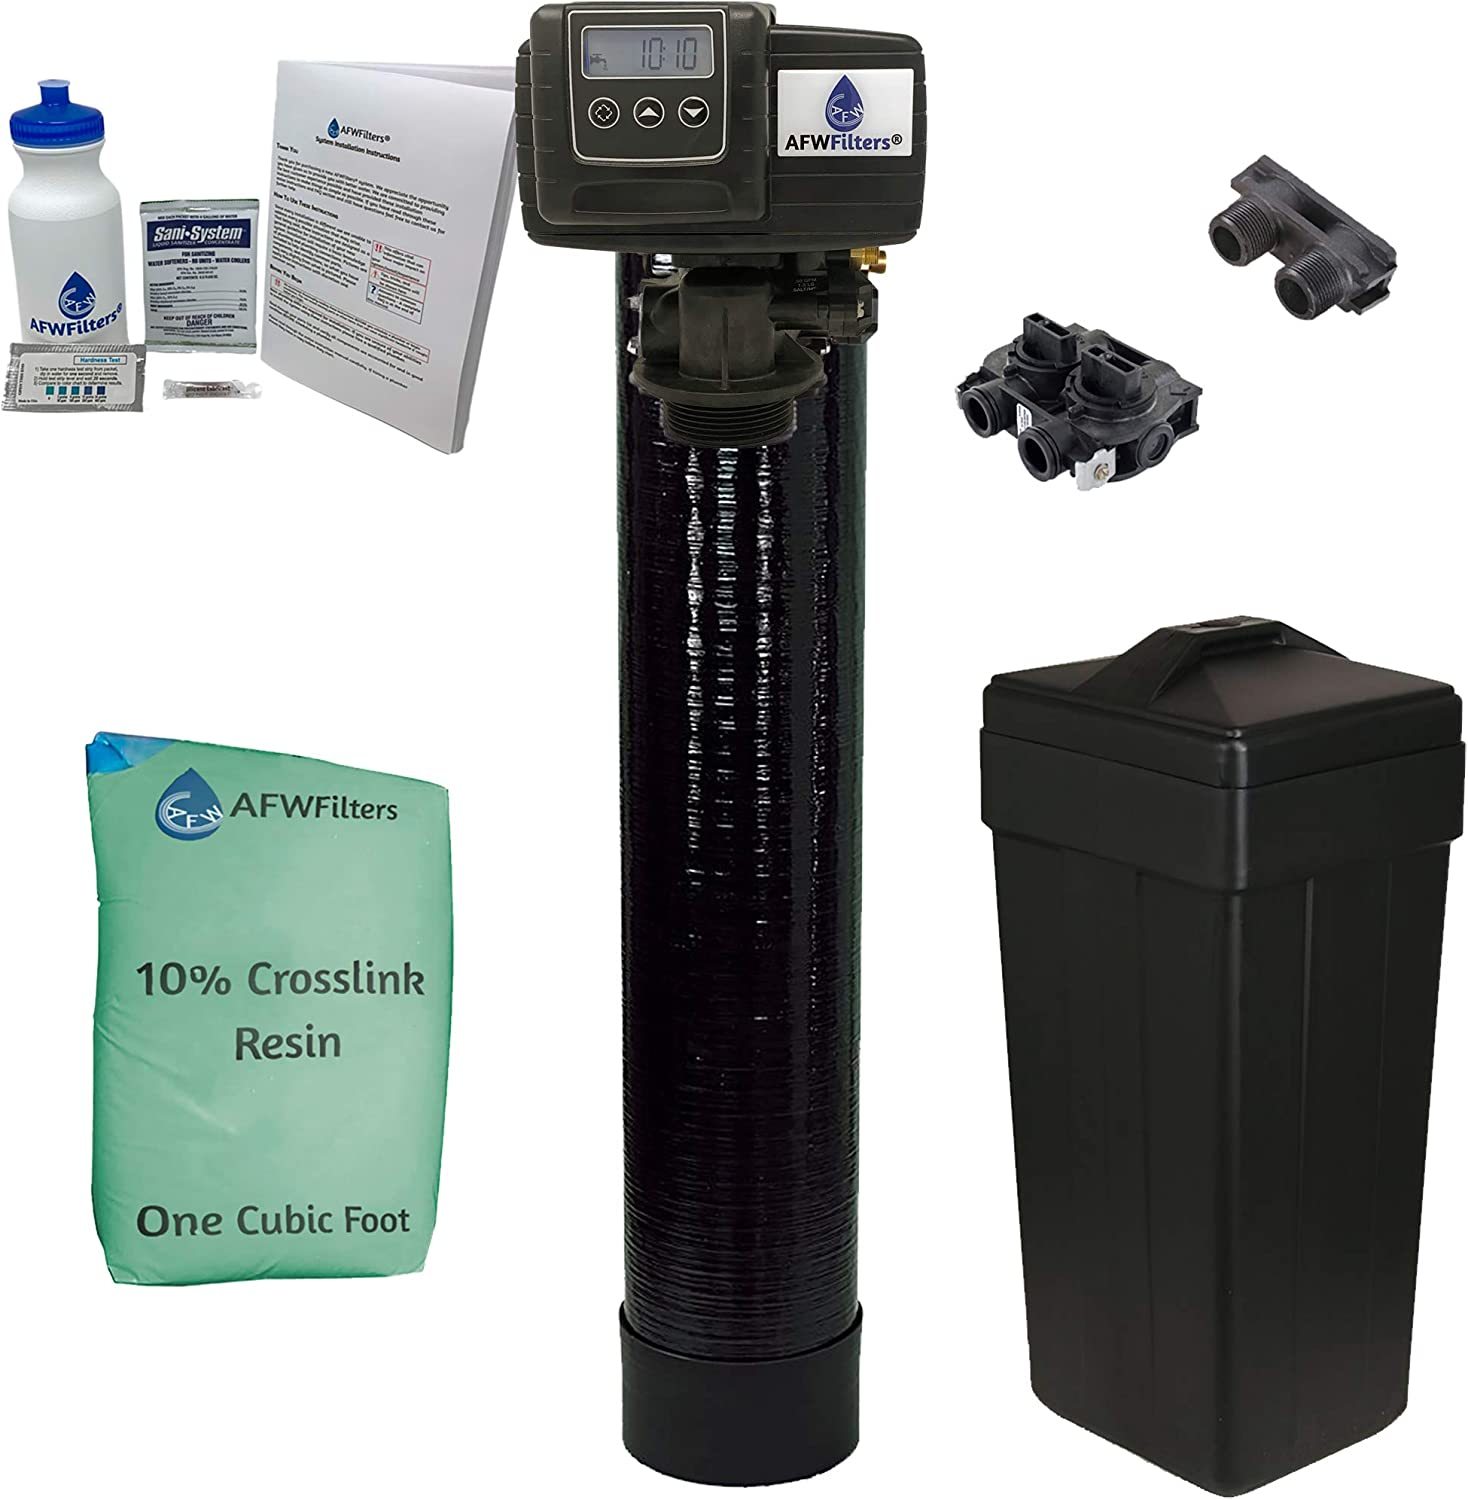 ABCwaters Built Fleck 5600sxt 32 Super-cheap 000 discount Hig WATER SOFTENER with 10%